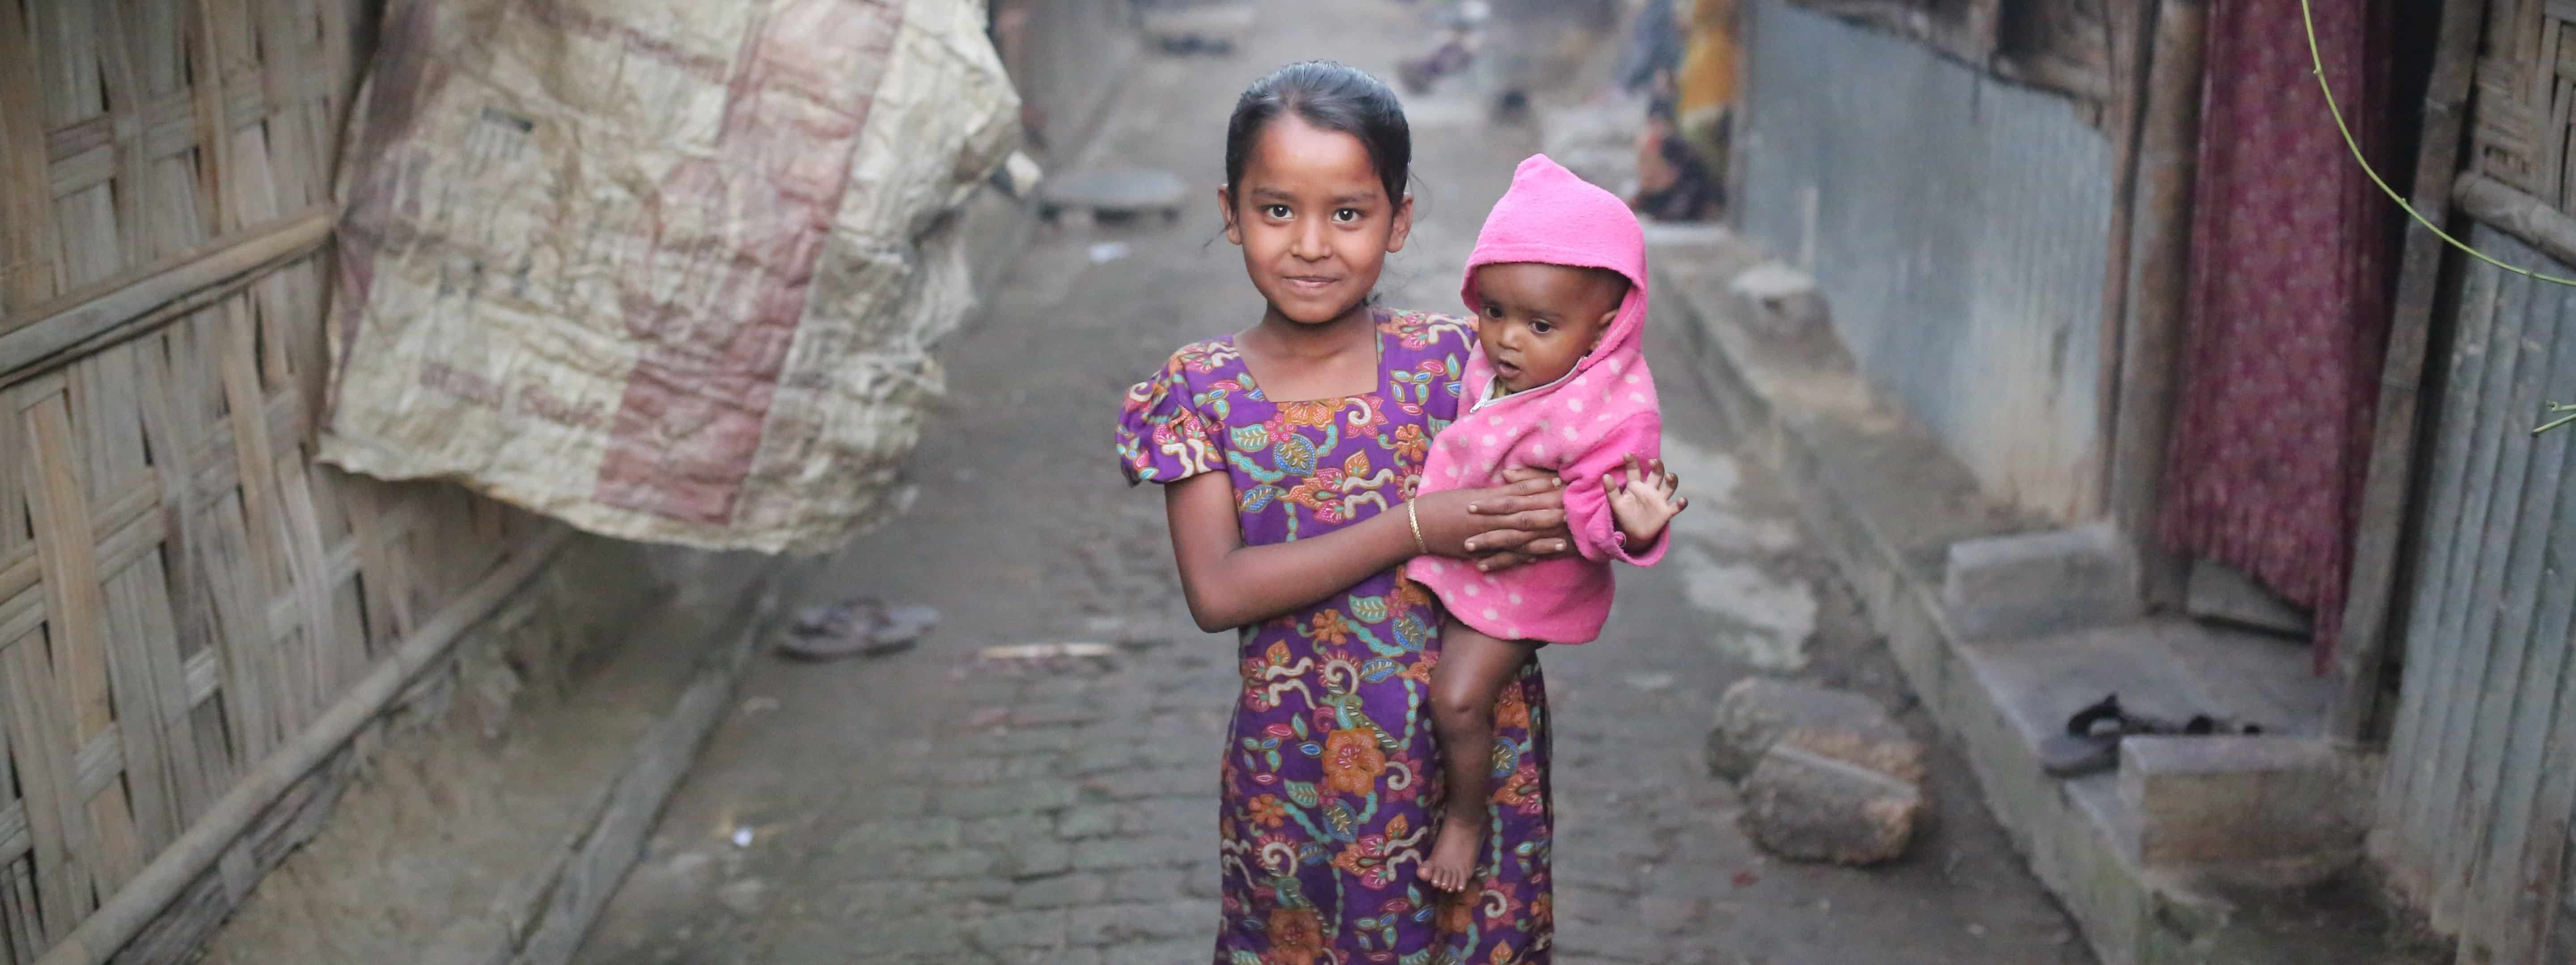 Two children in a unregistered Rohingya camp in Bangladesh, December 2016. Photo: Getty Images/Anadolu Agency